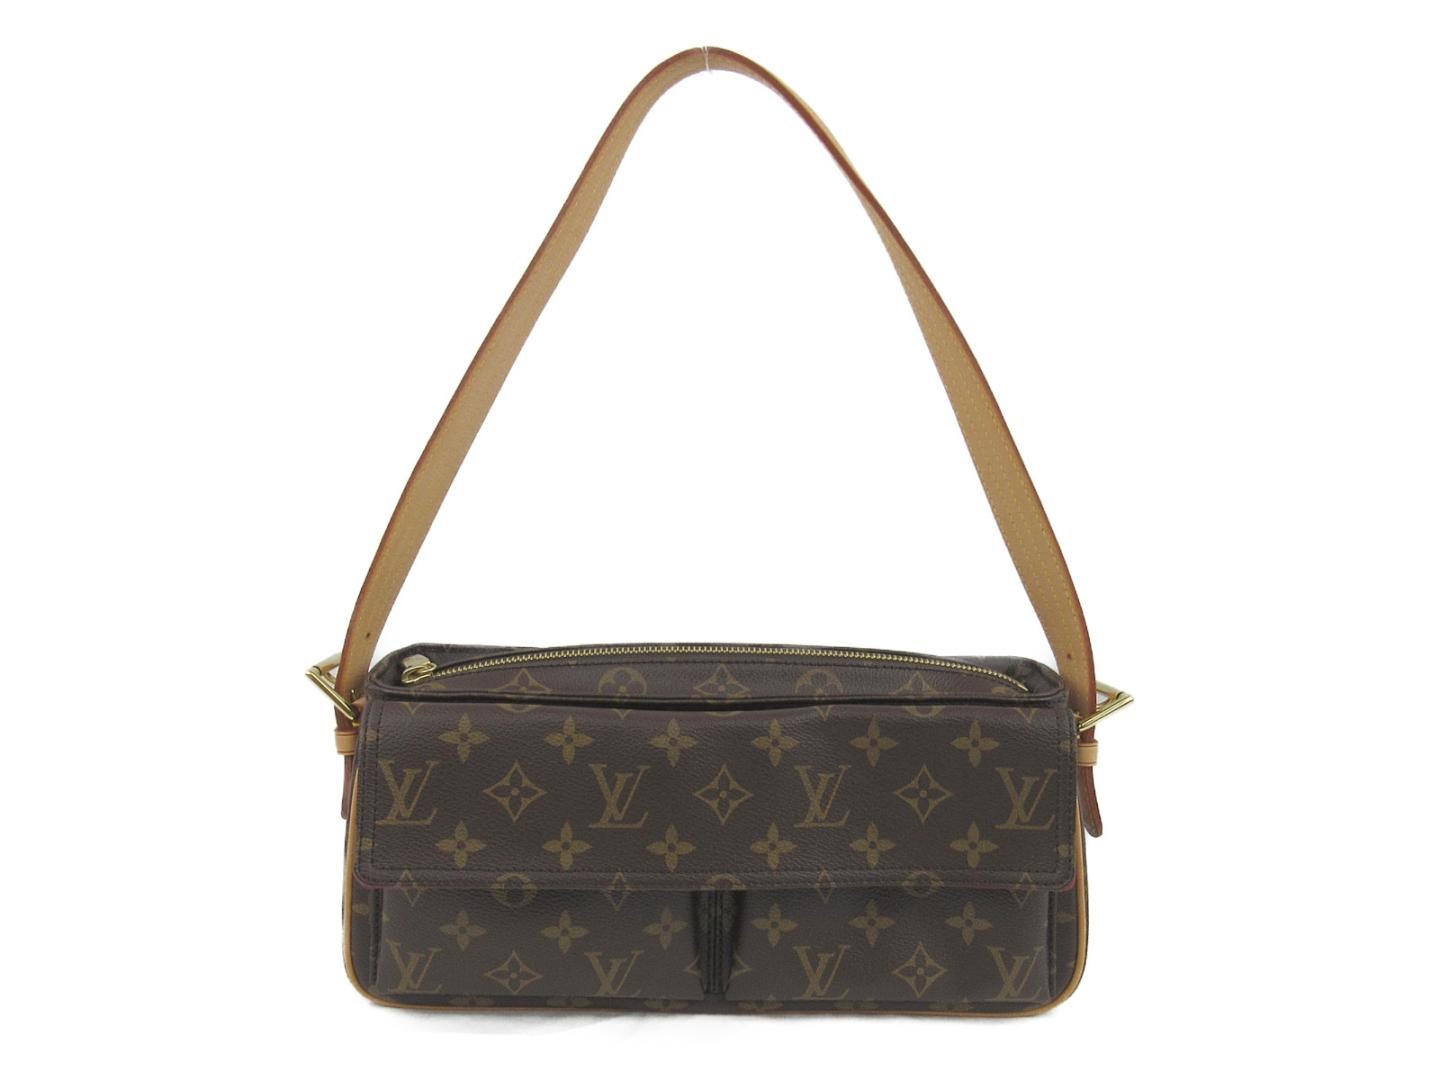 b3a41285df33 BRANDOFF  Authentic LOUIS VUITTON Viva Cite MM Shoulder Bag M51164 ...